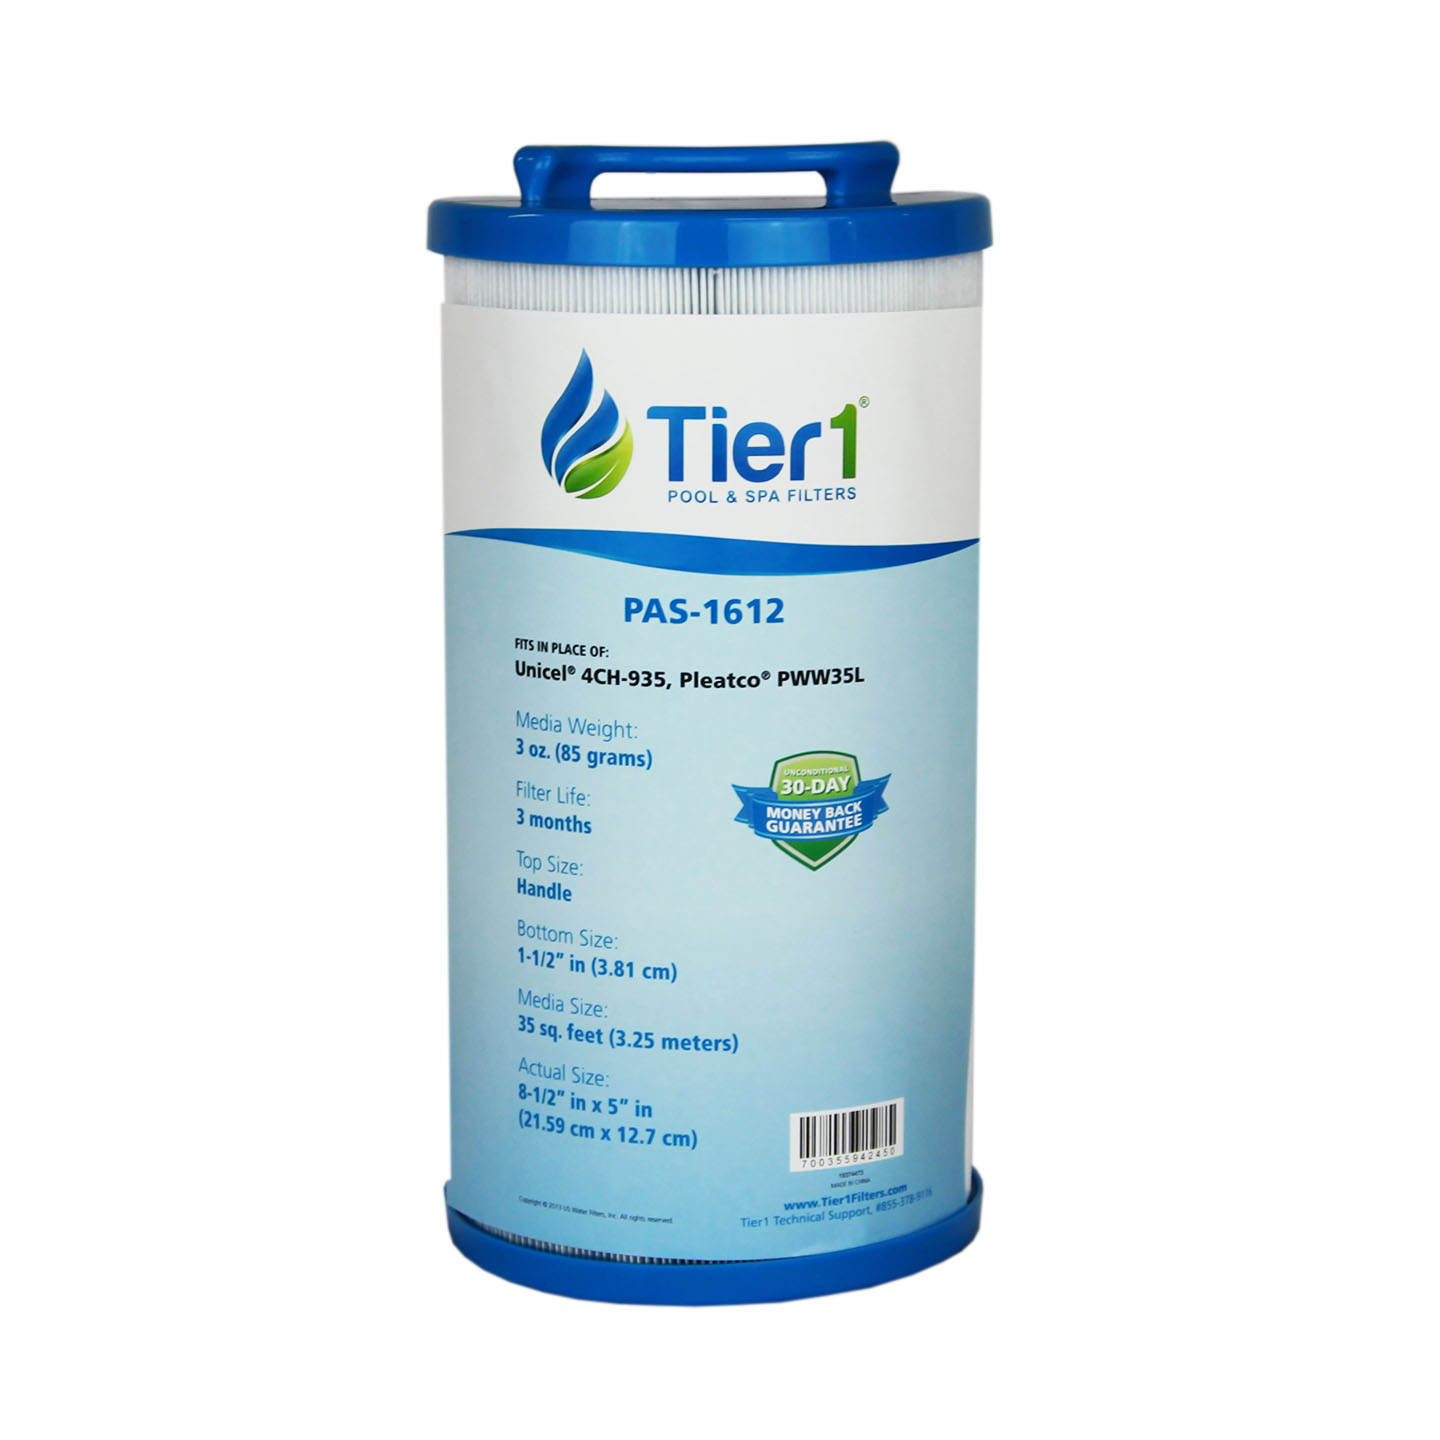 Tier1 Replacement for 35 Waterway 817-4035, Teleweir 35 SF, Pleatco PWW35L, Unicel 4CH-935 Filter Cartridge